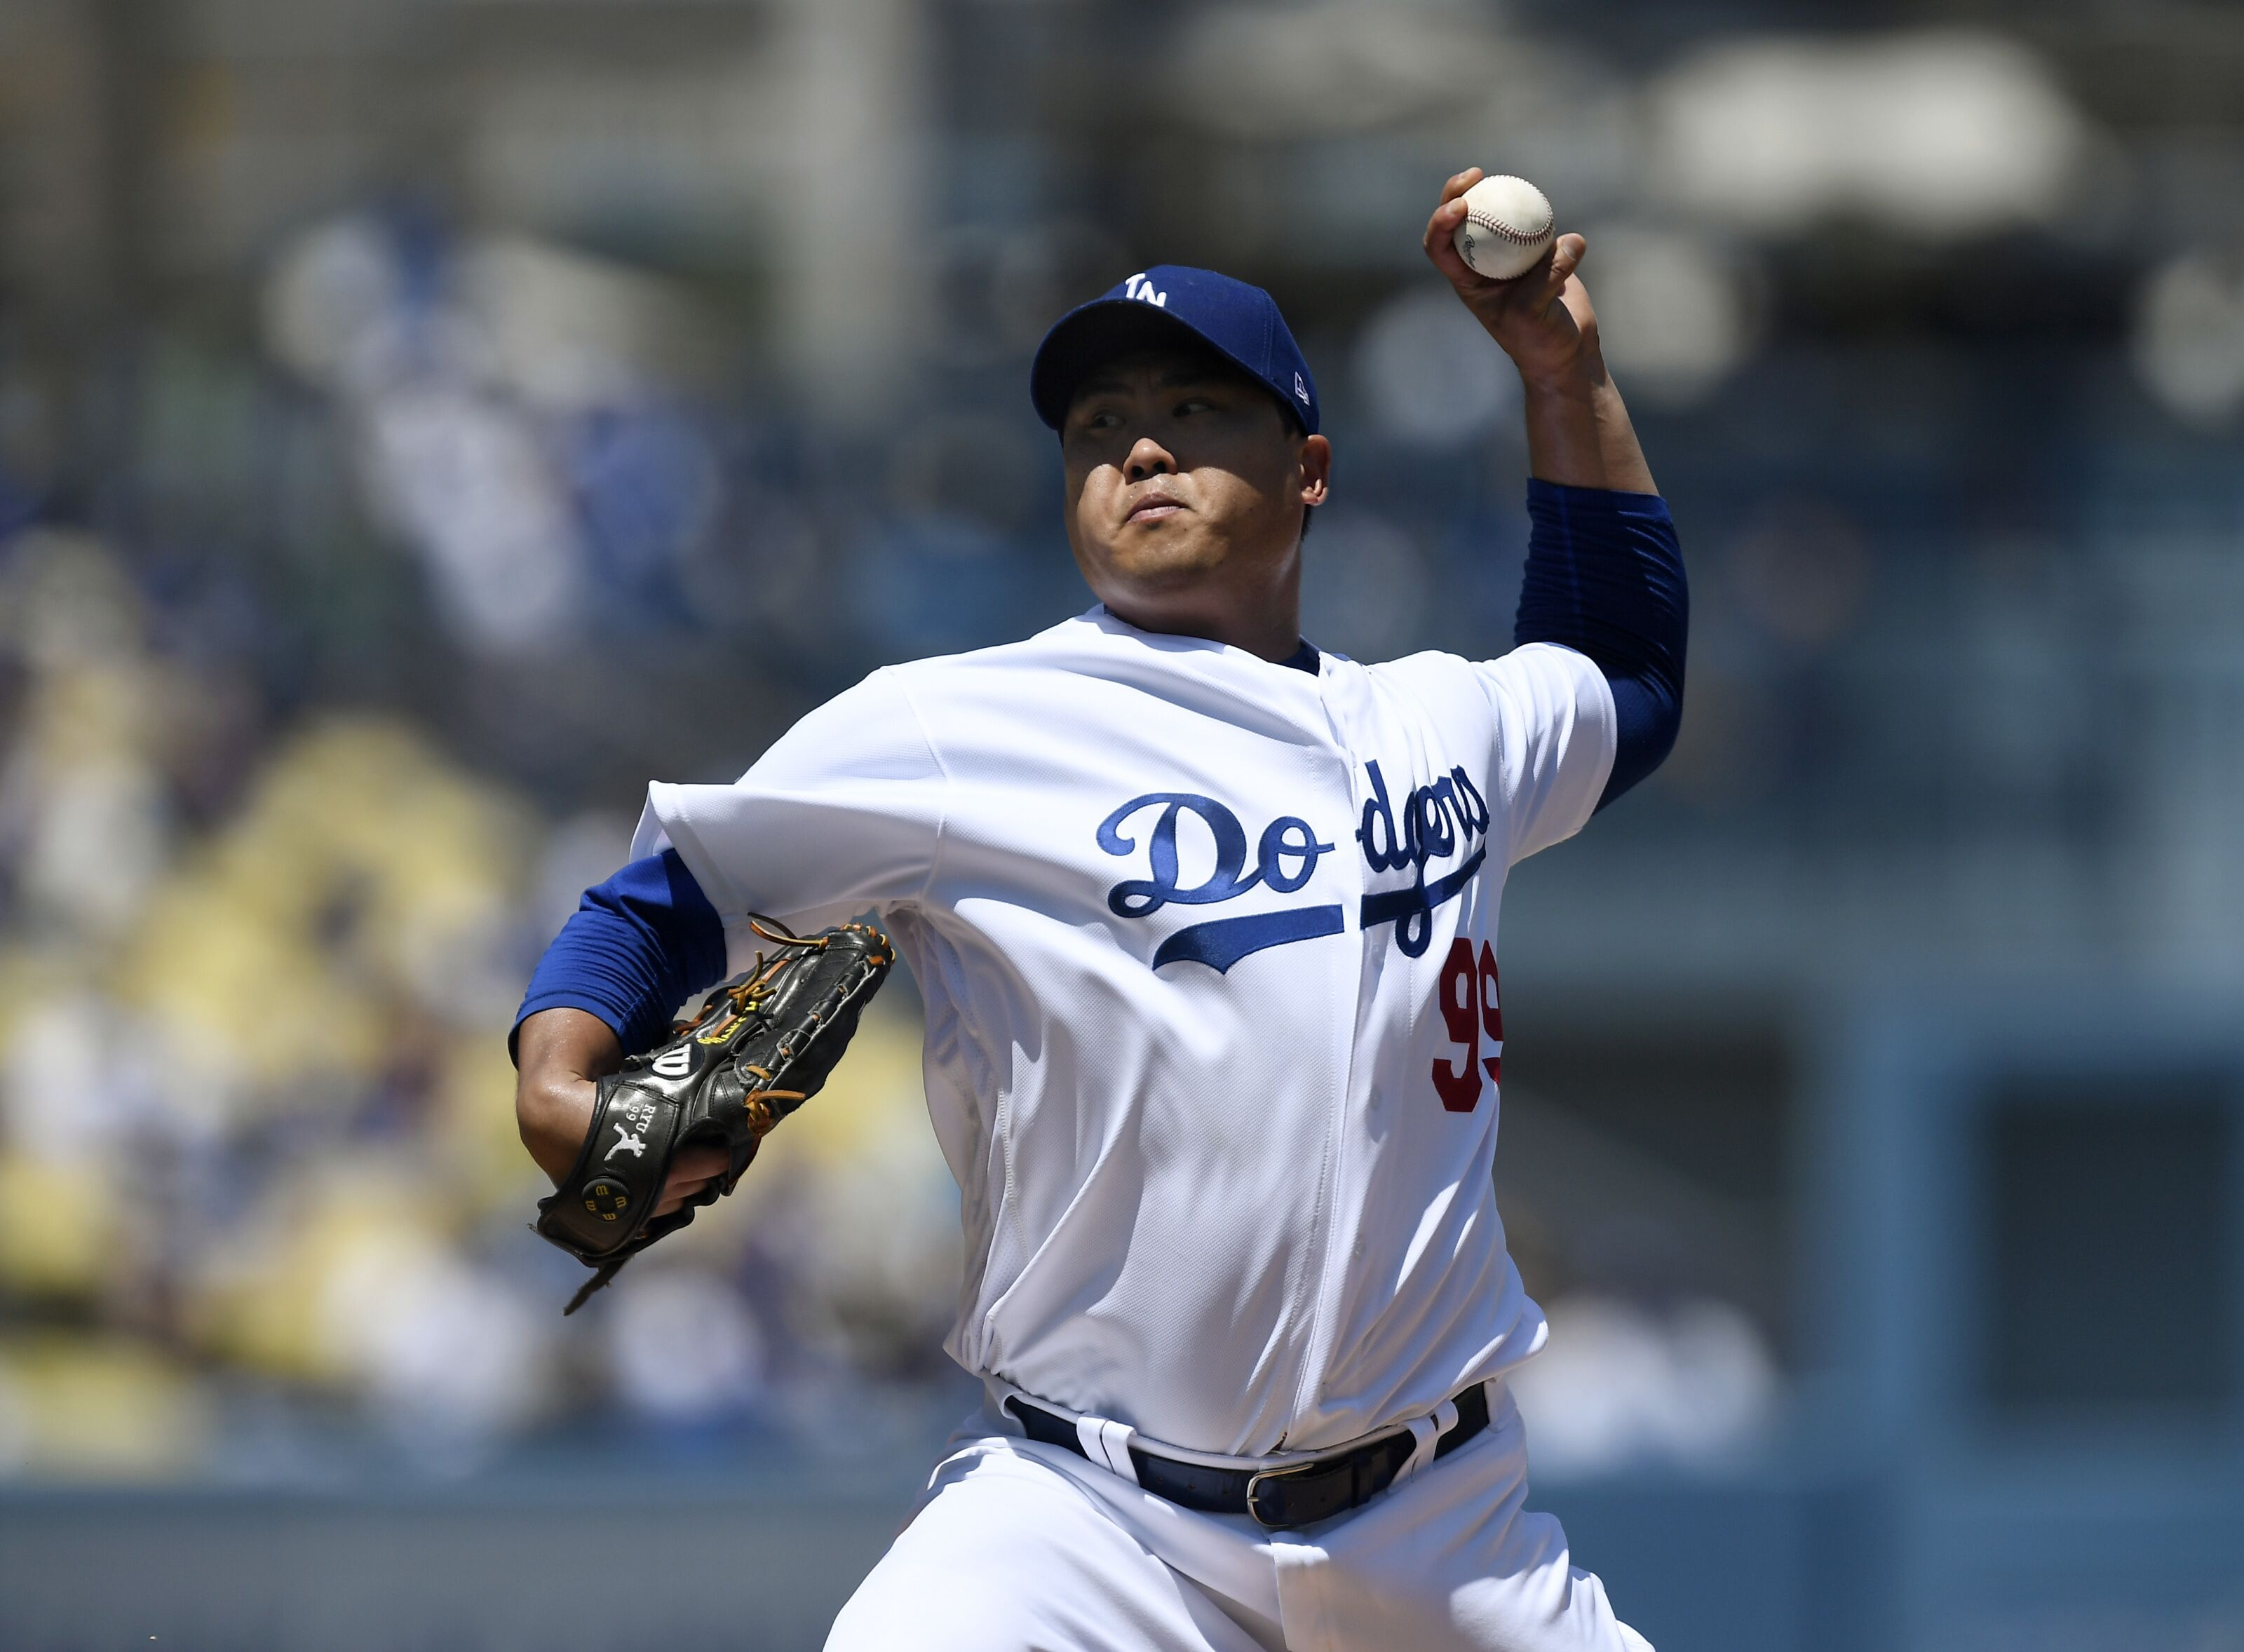 Dodgers: NL Cy Young Hyun-Jin Ryu's to lose